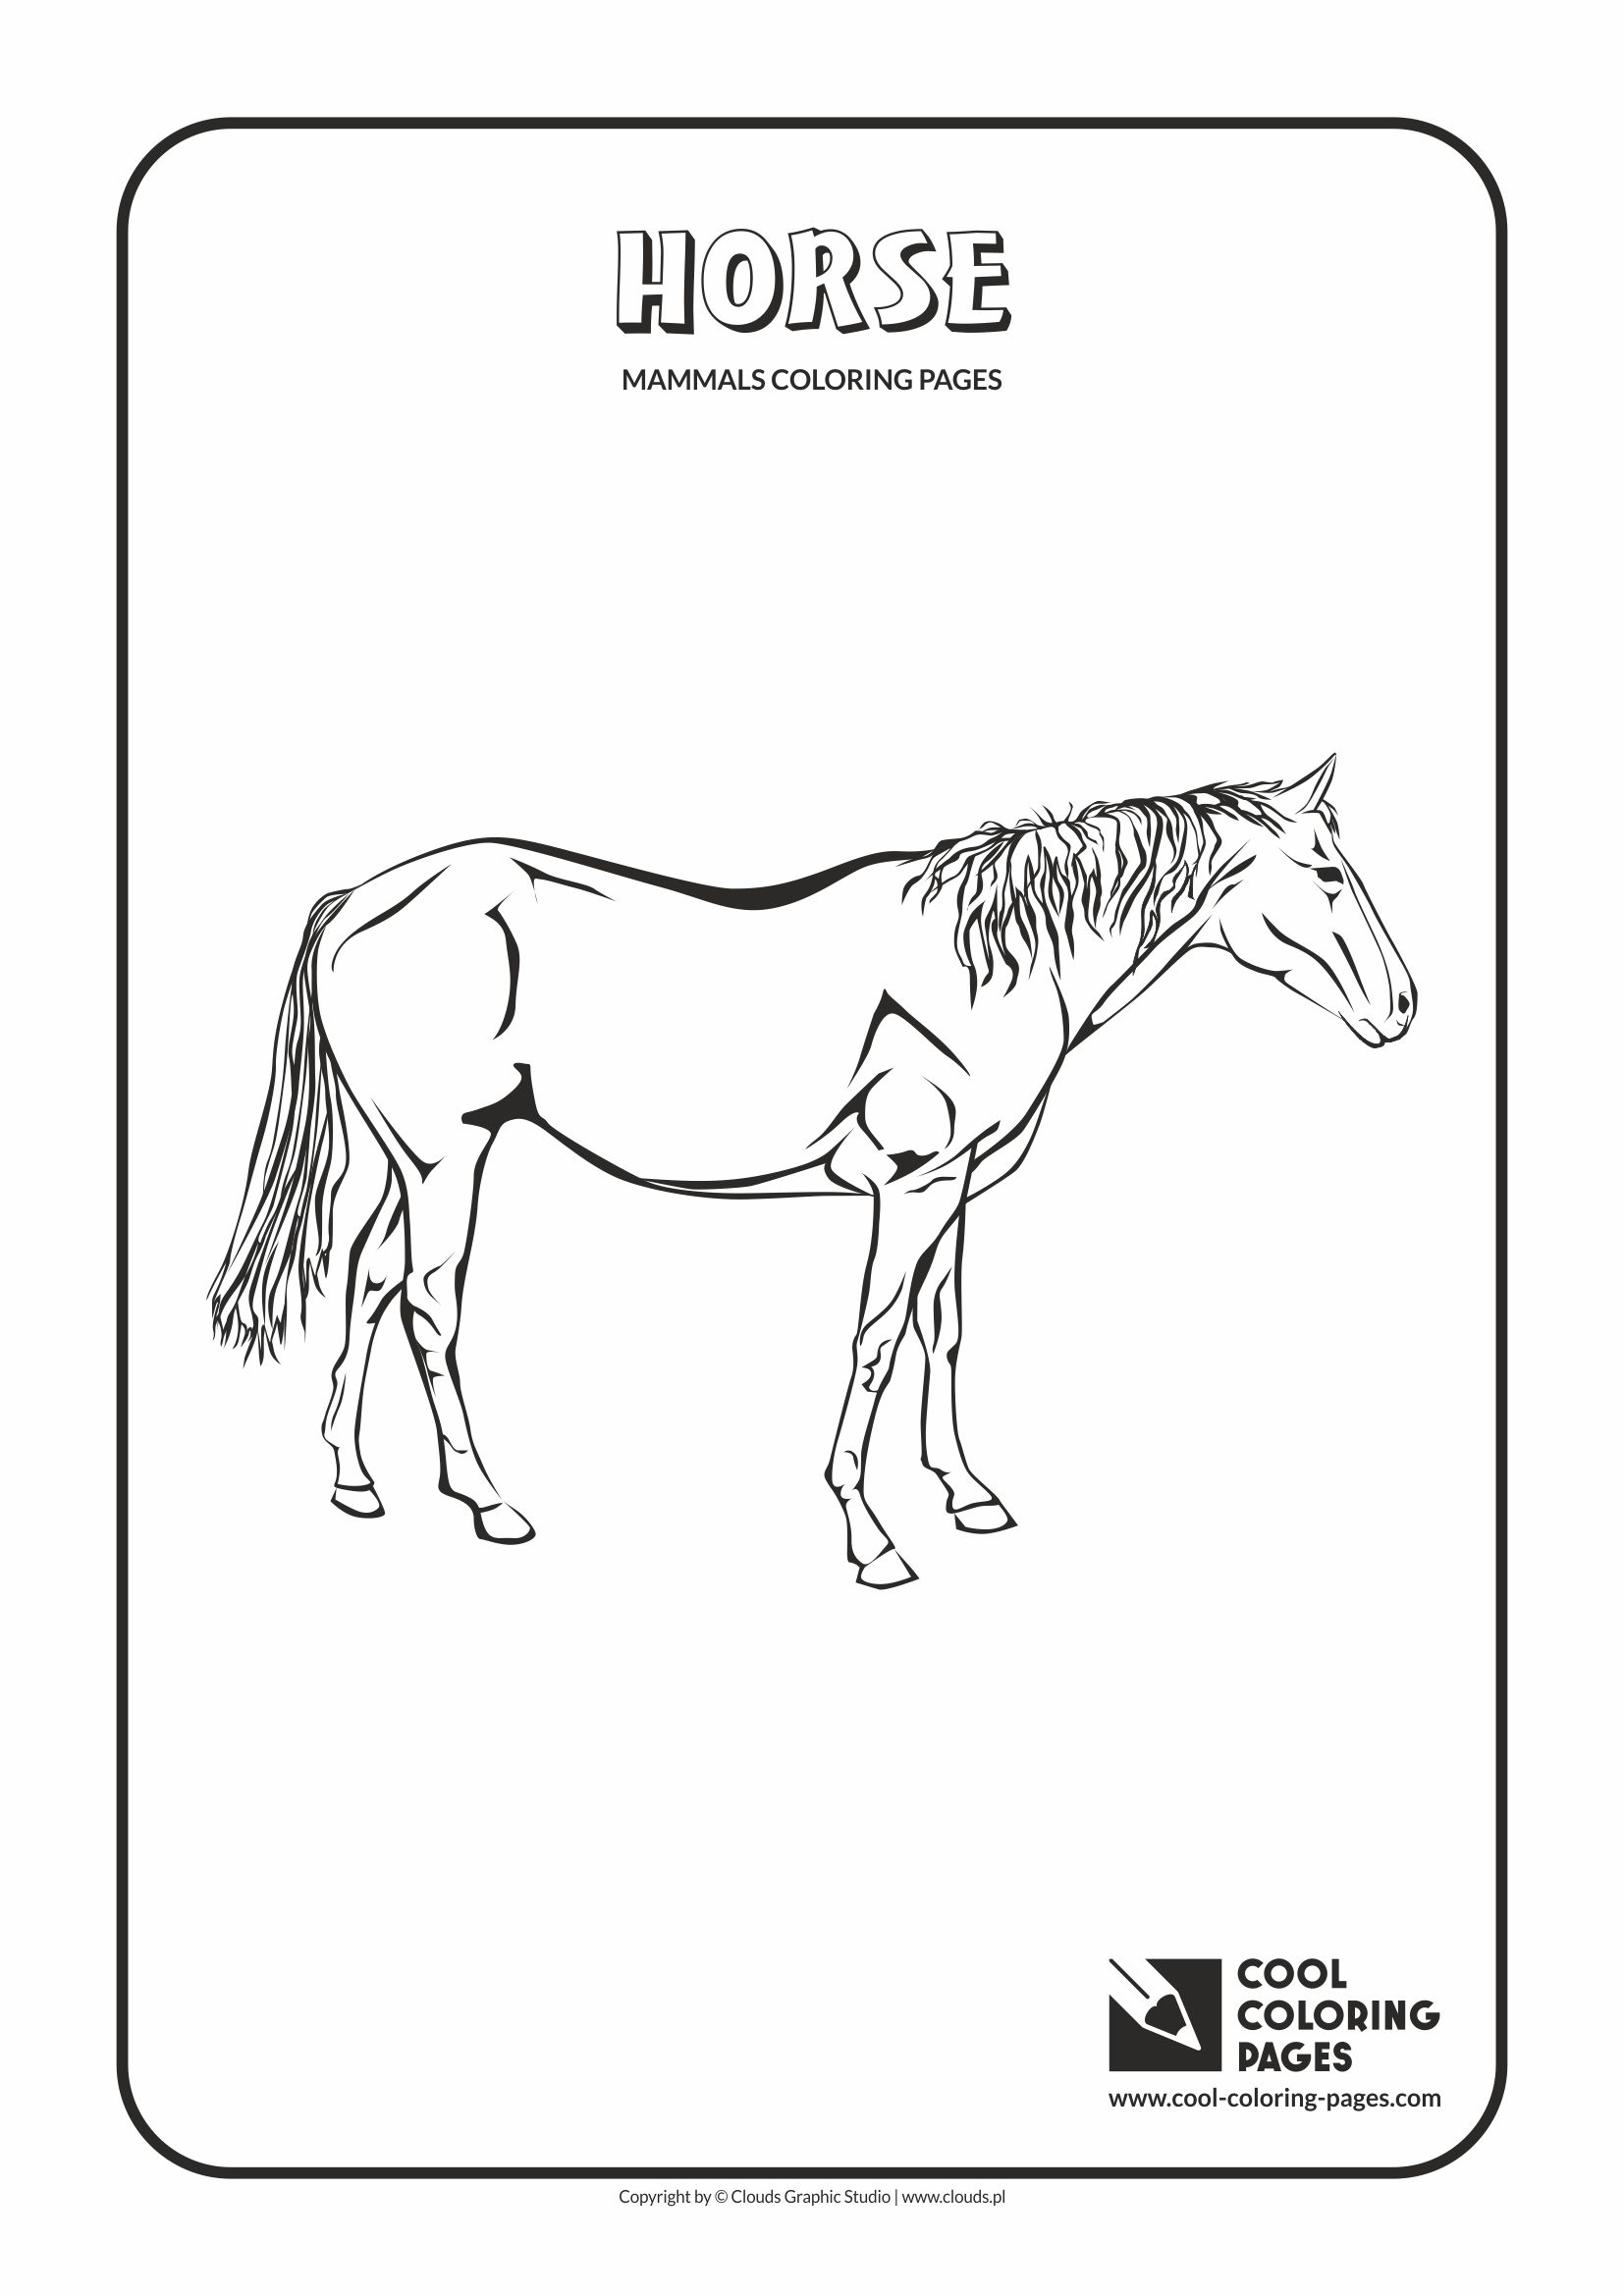 Cool Coloring Pages - Animals / Horse / Coloring page with horse